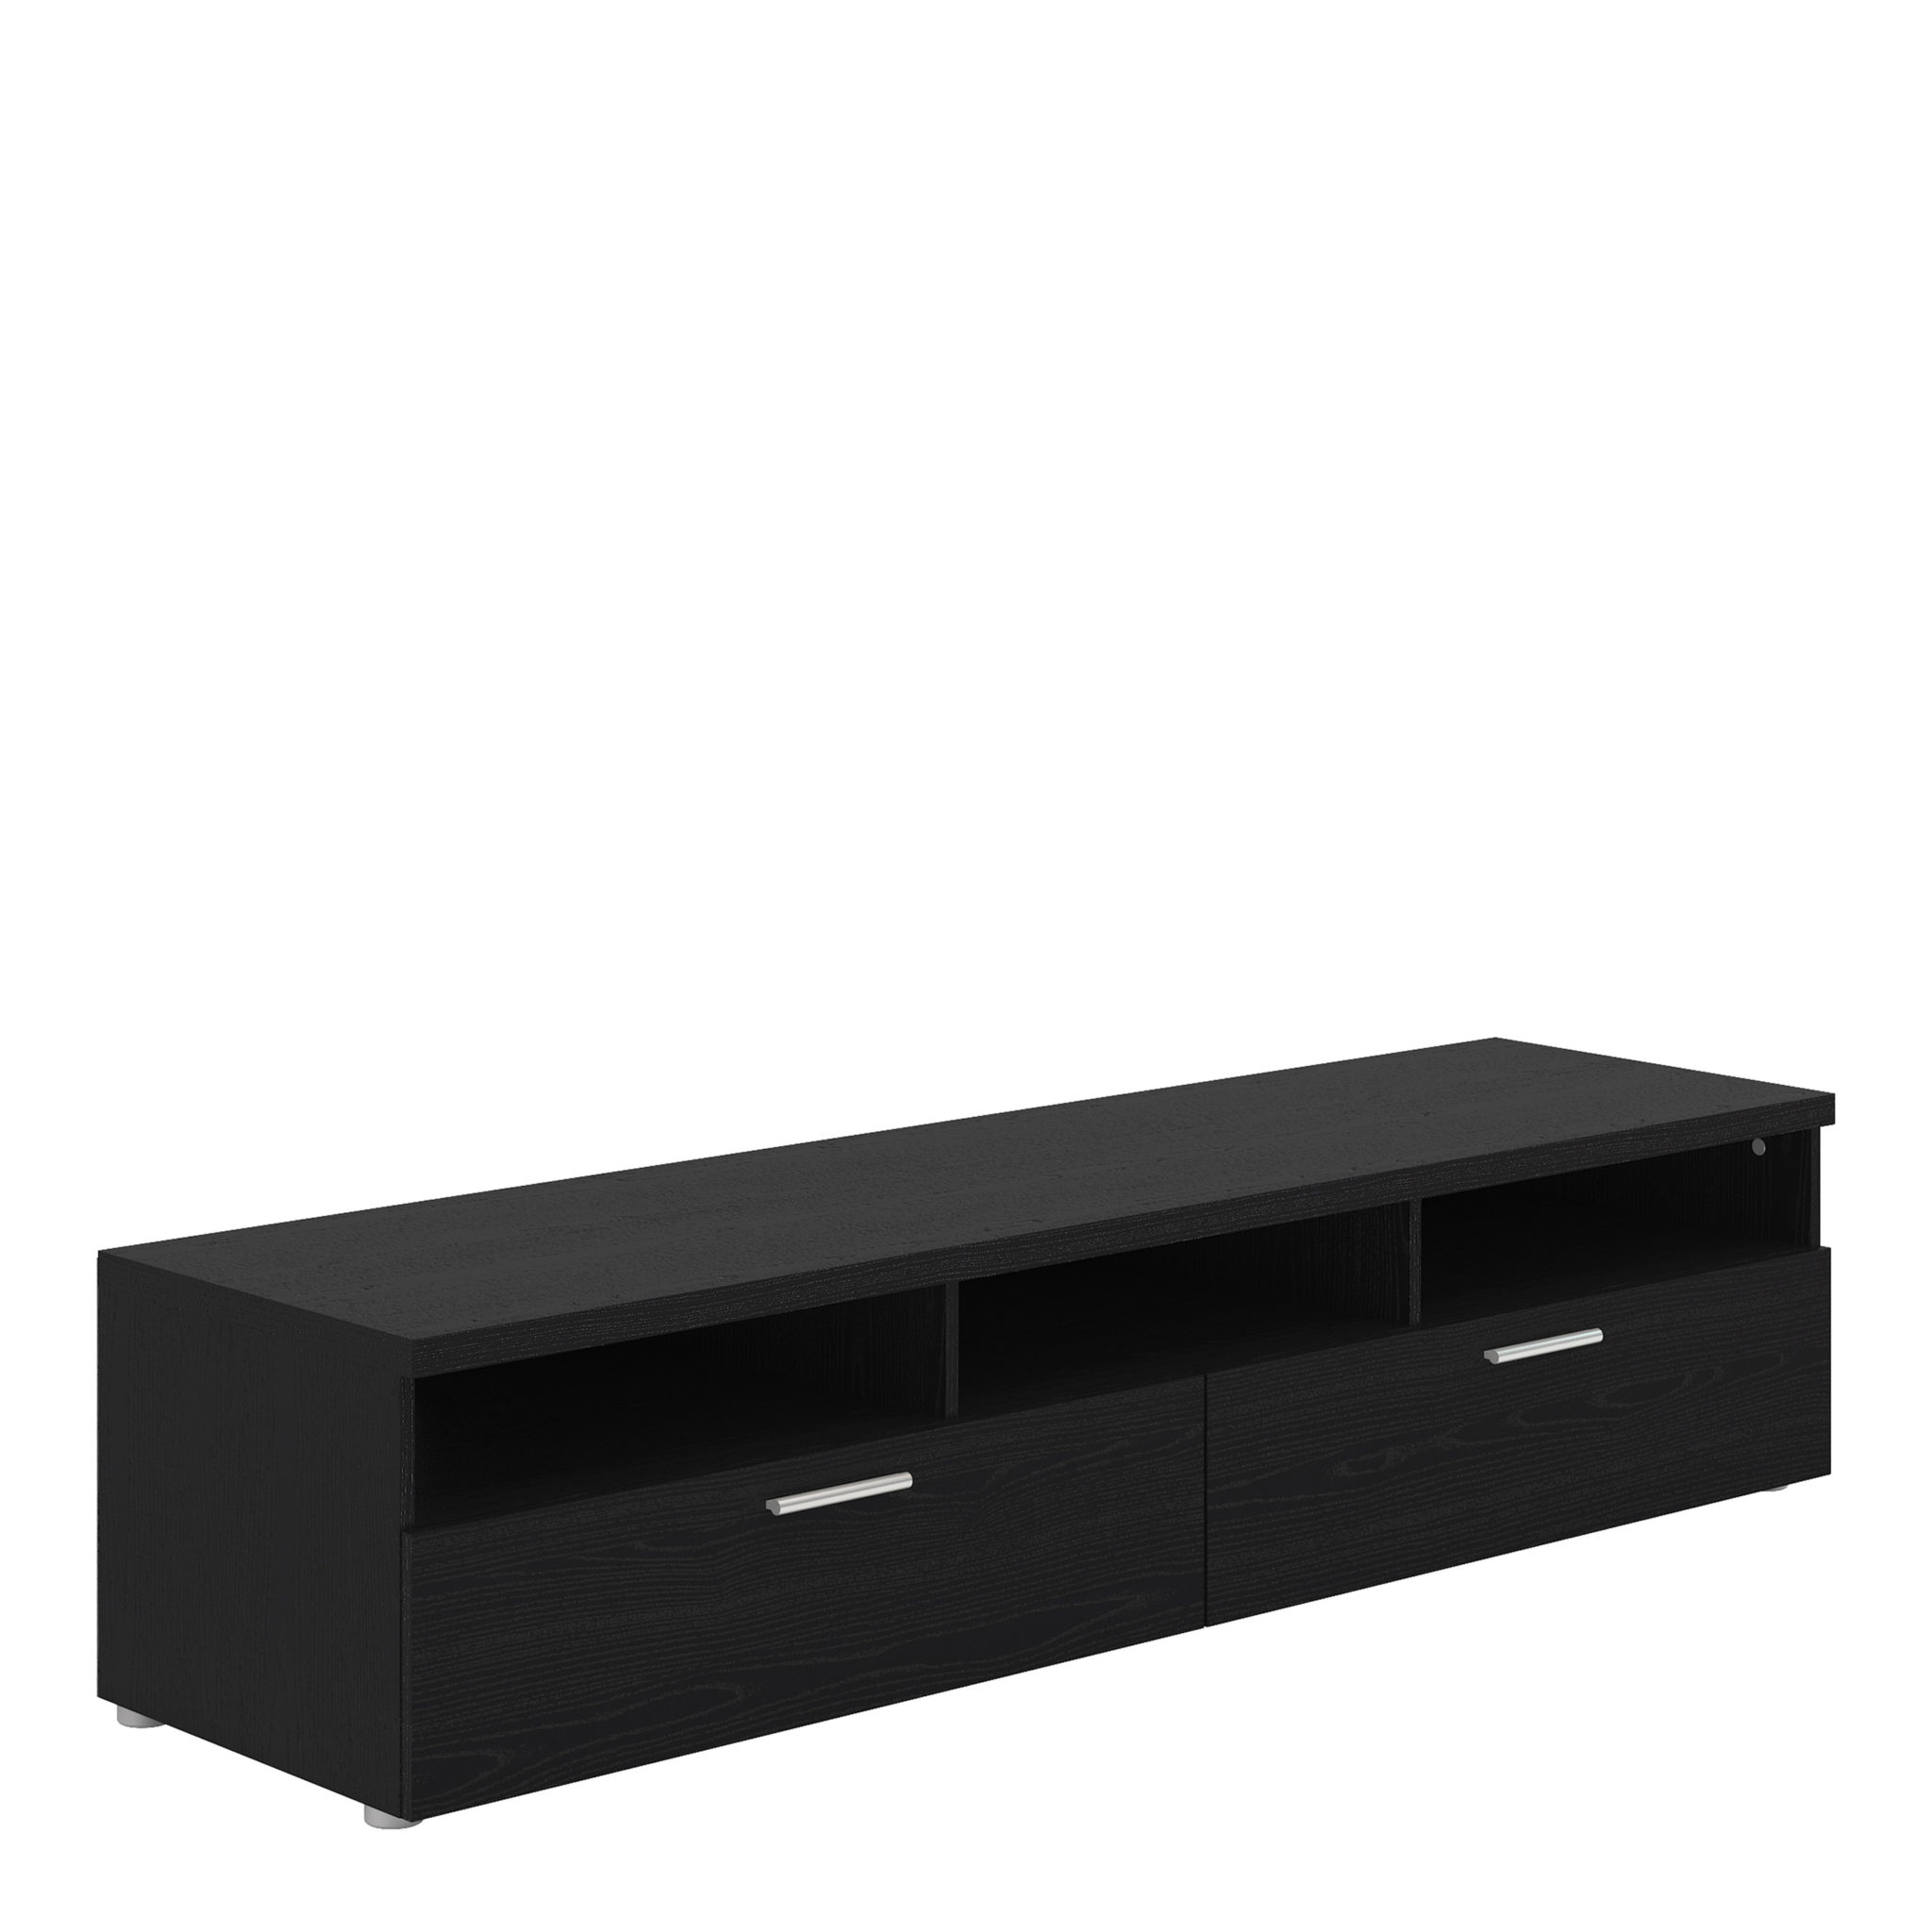 TV Unit 2 Drawers 3 Shelves in Black Woodgrain